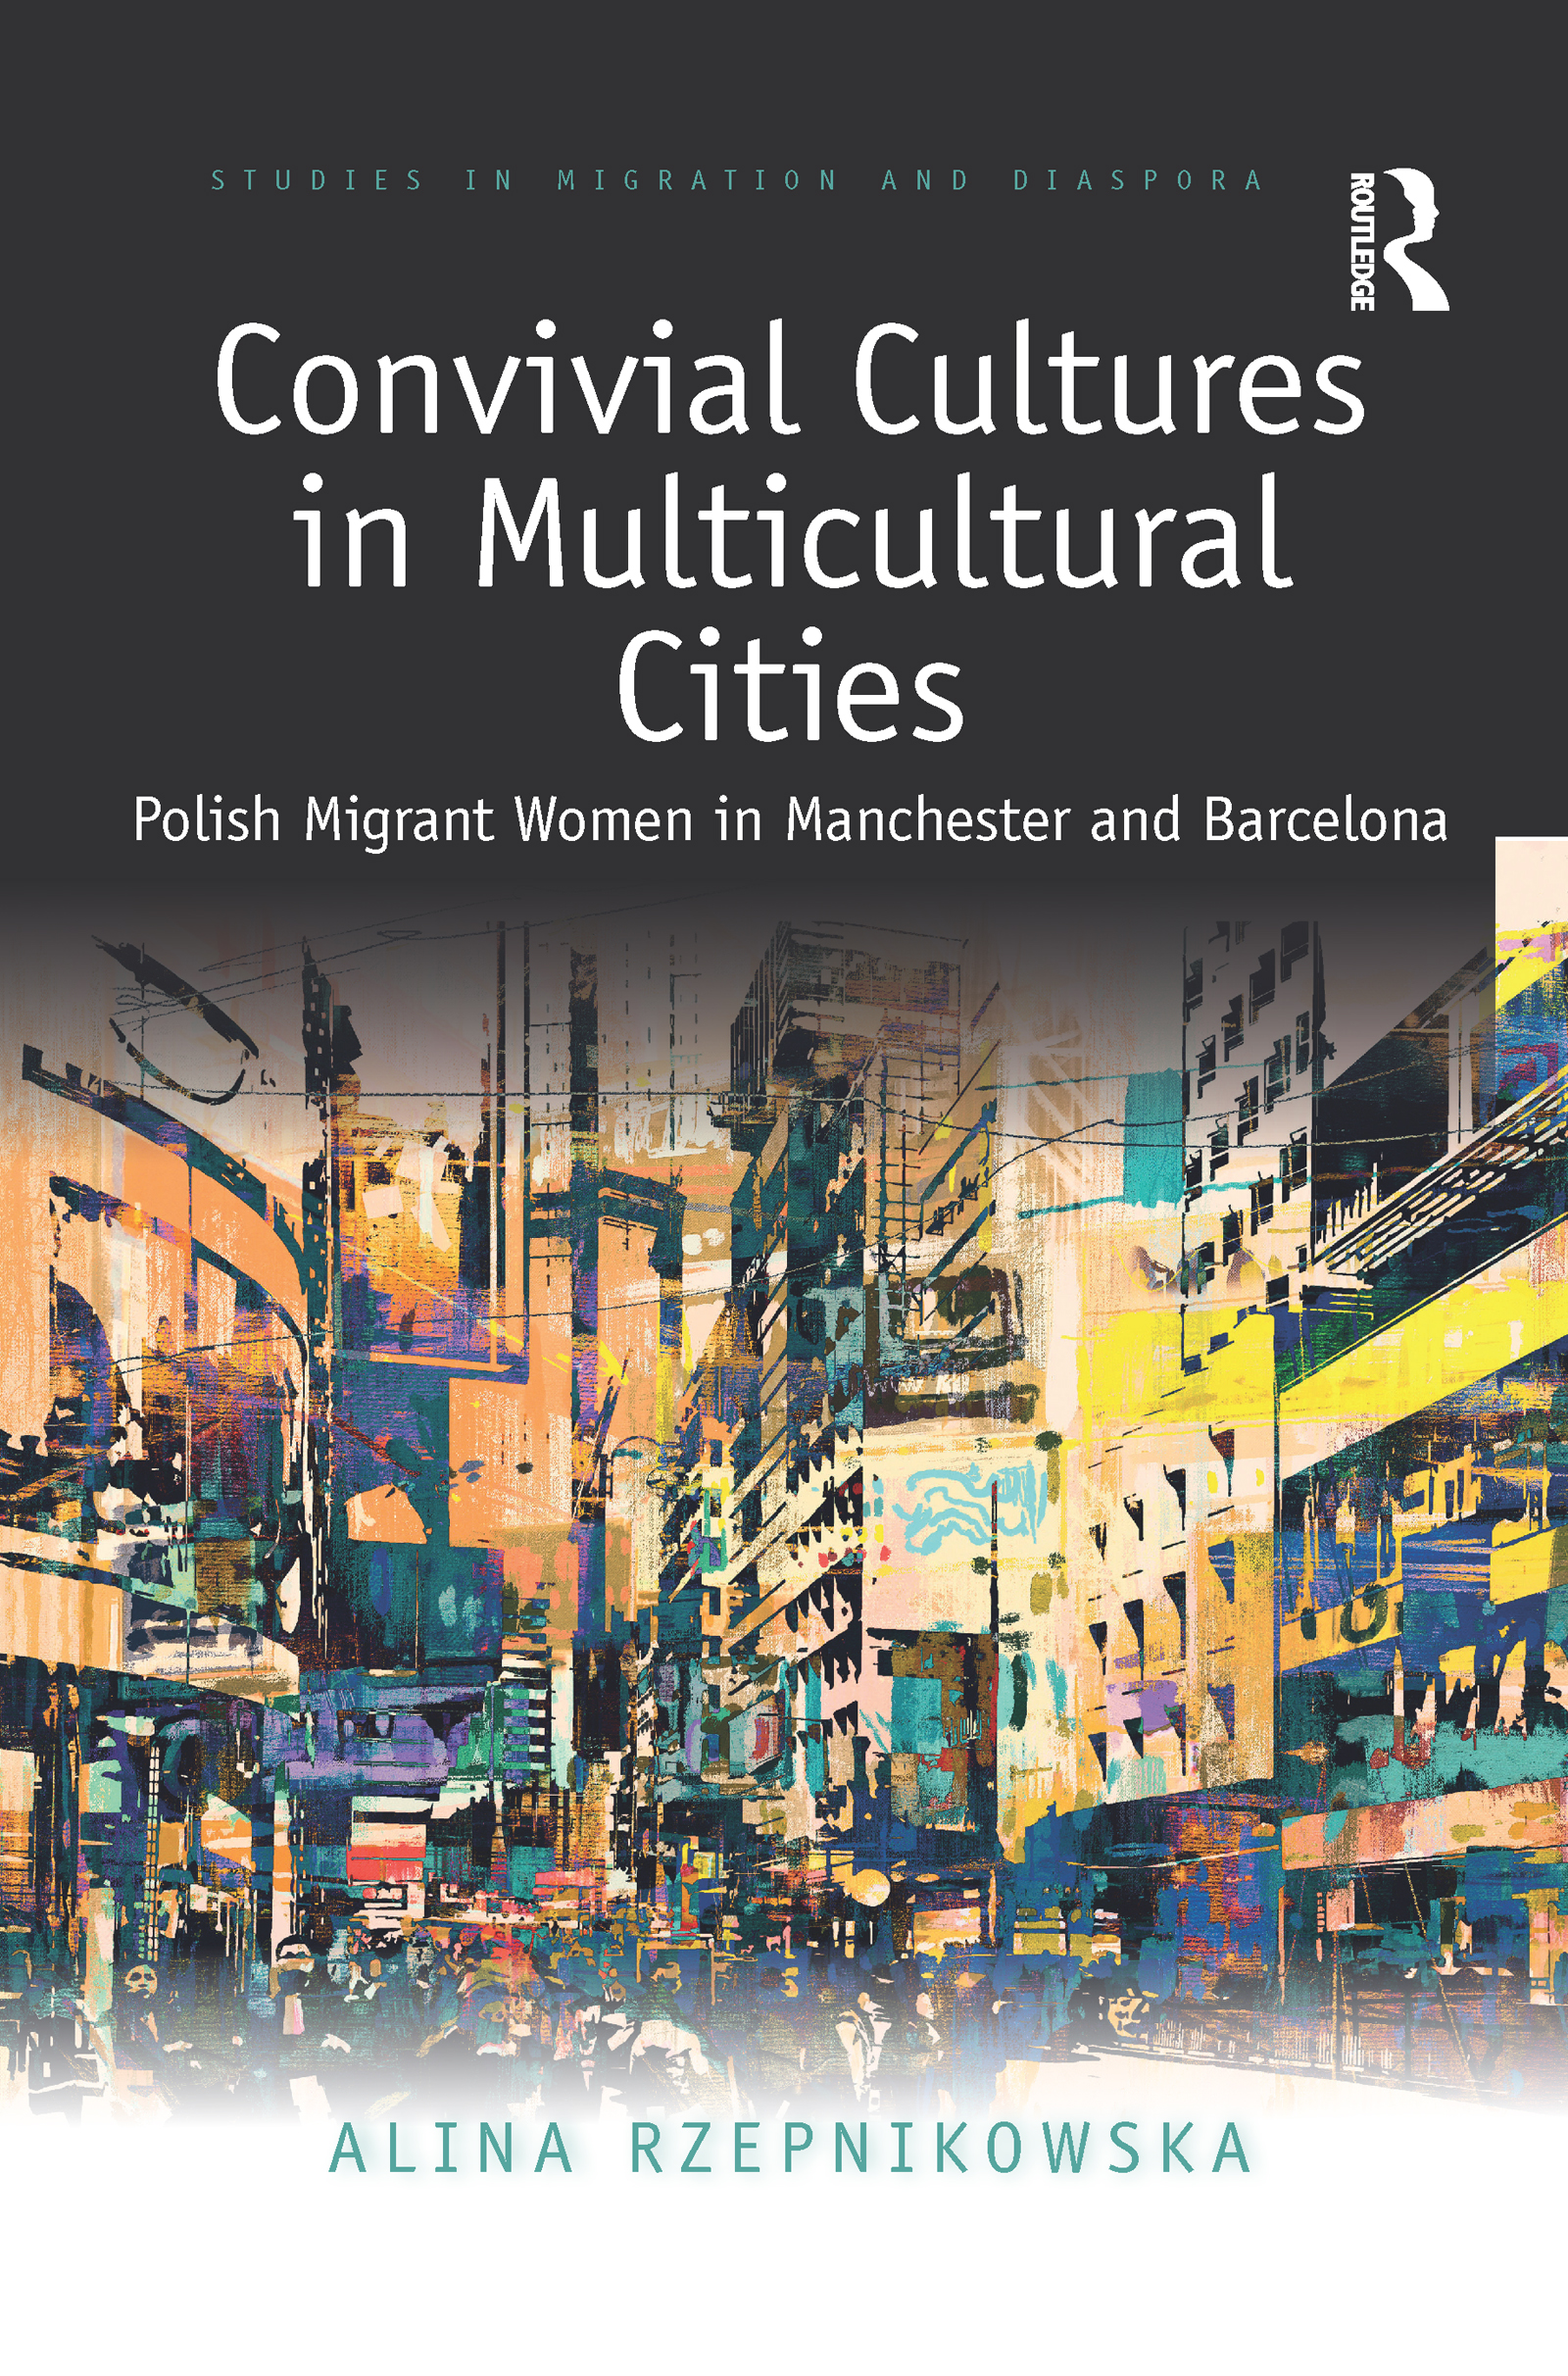 Convivial Cultures in Multicultural Cities